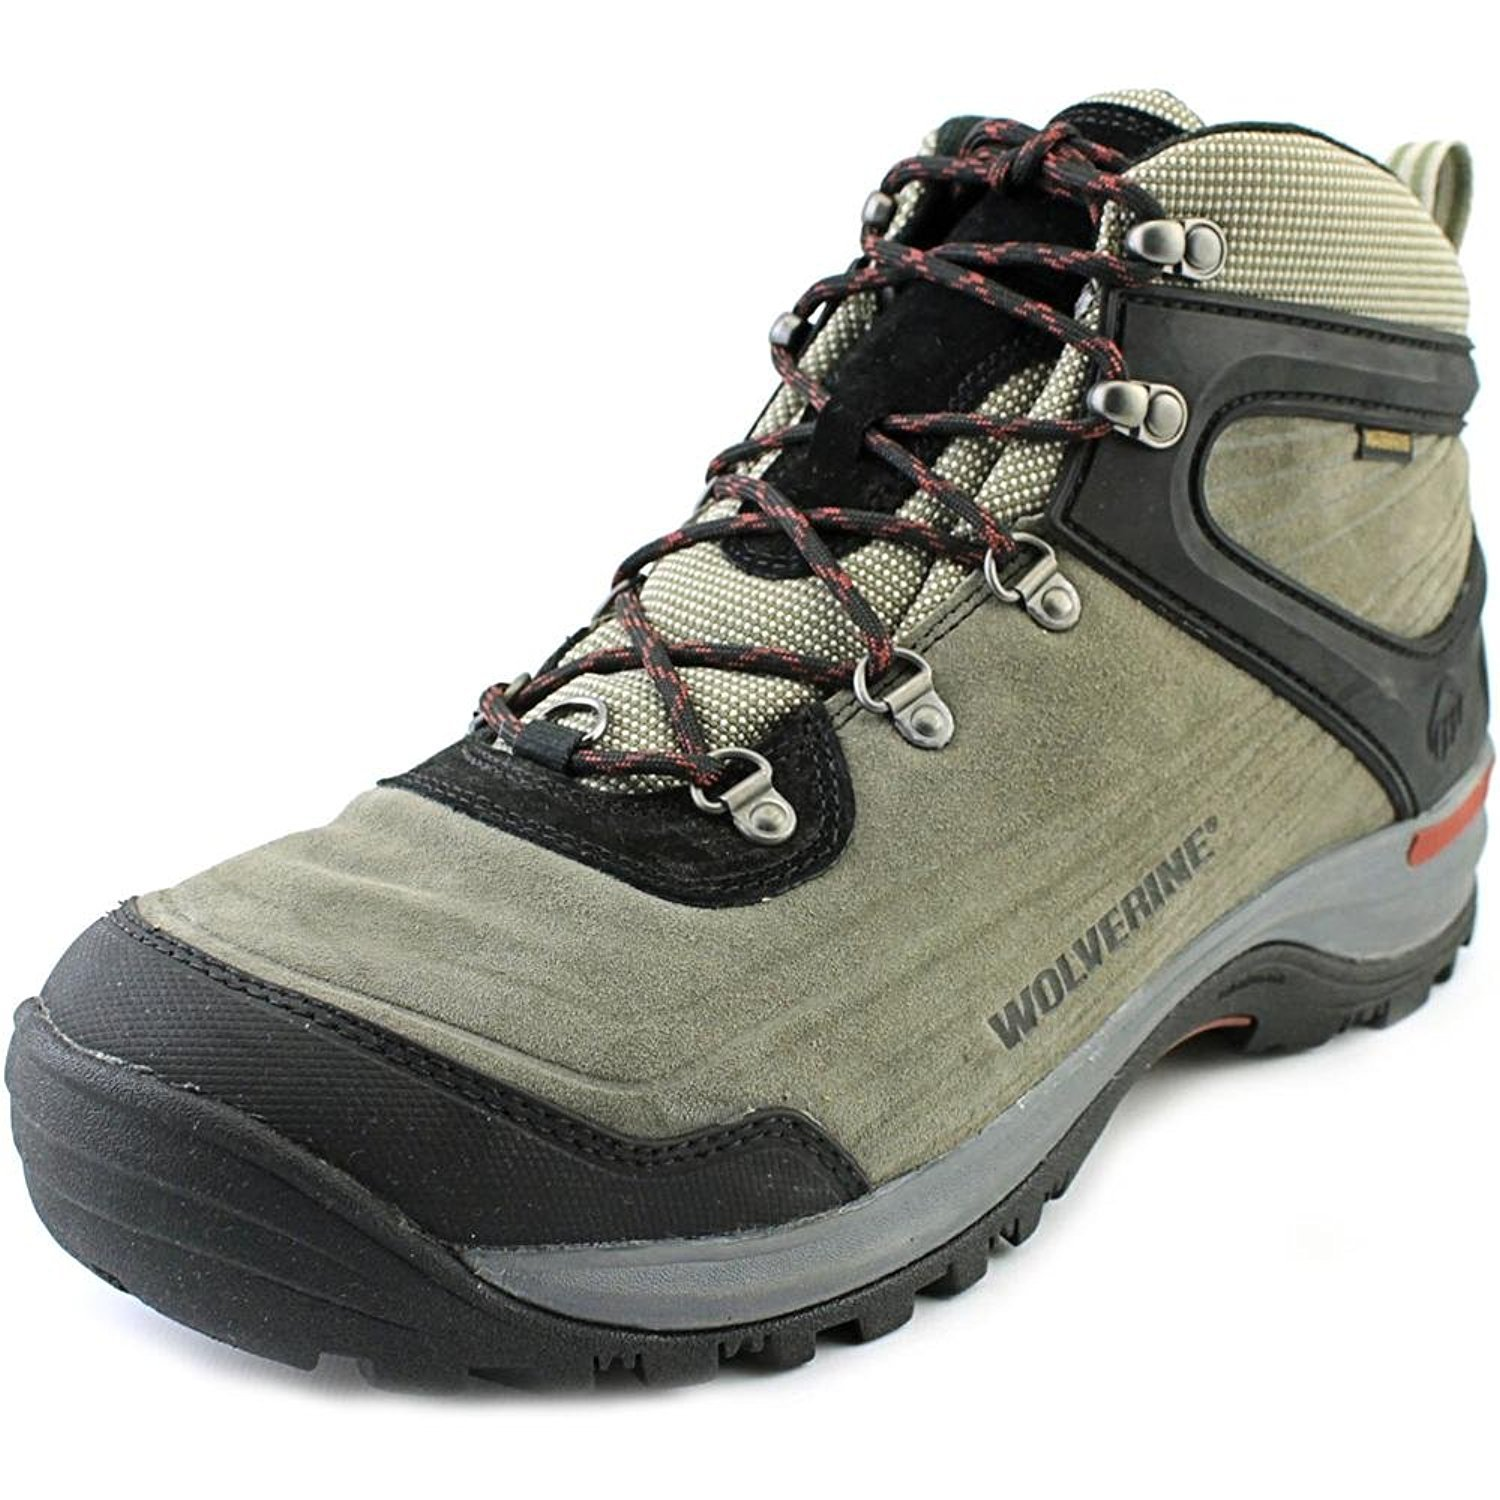 Men's Wolverine Impact Waterproof Suede Hiking Boot (8 EW in Grey)